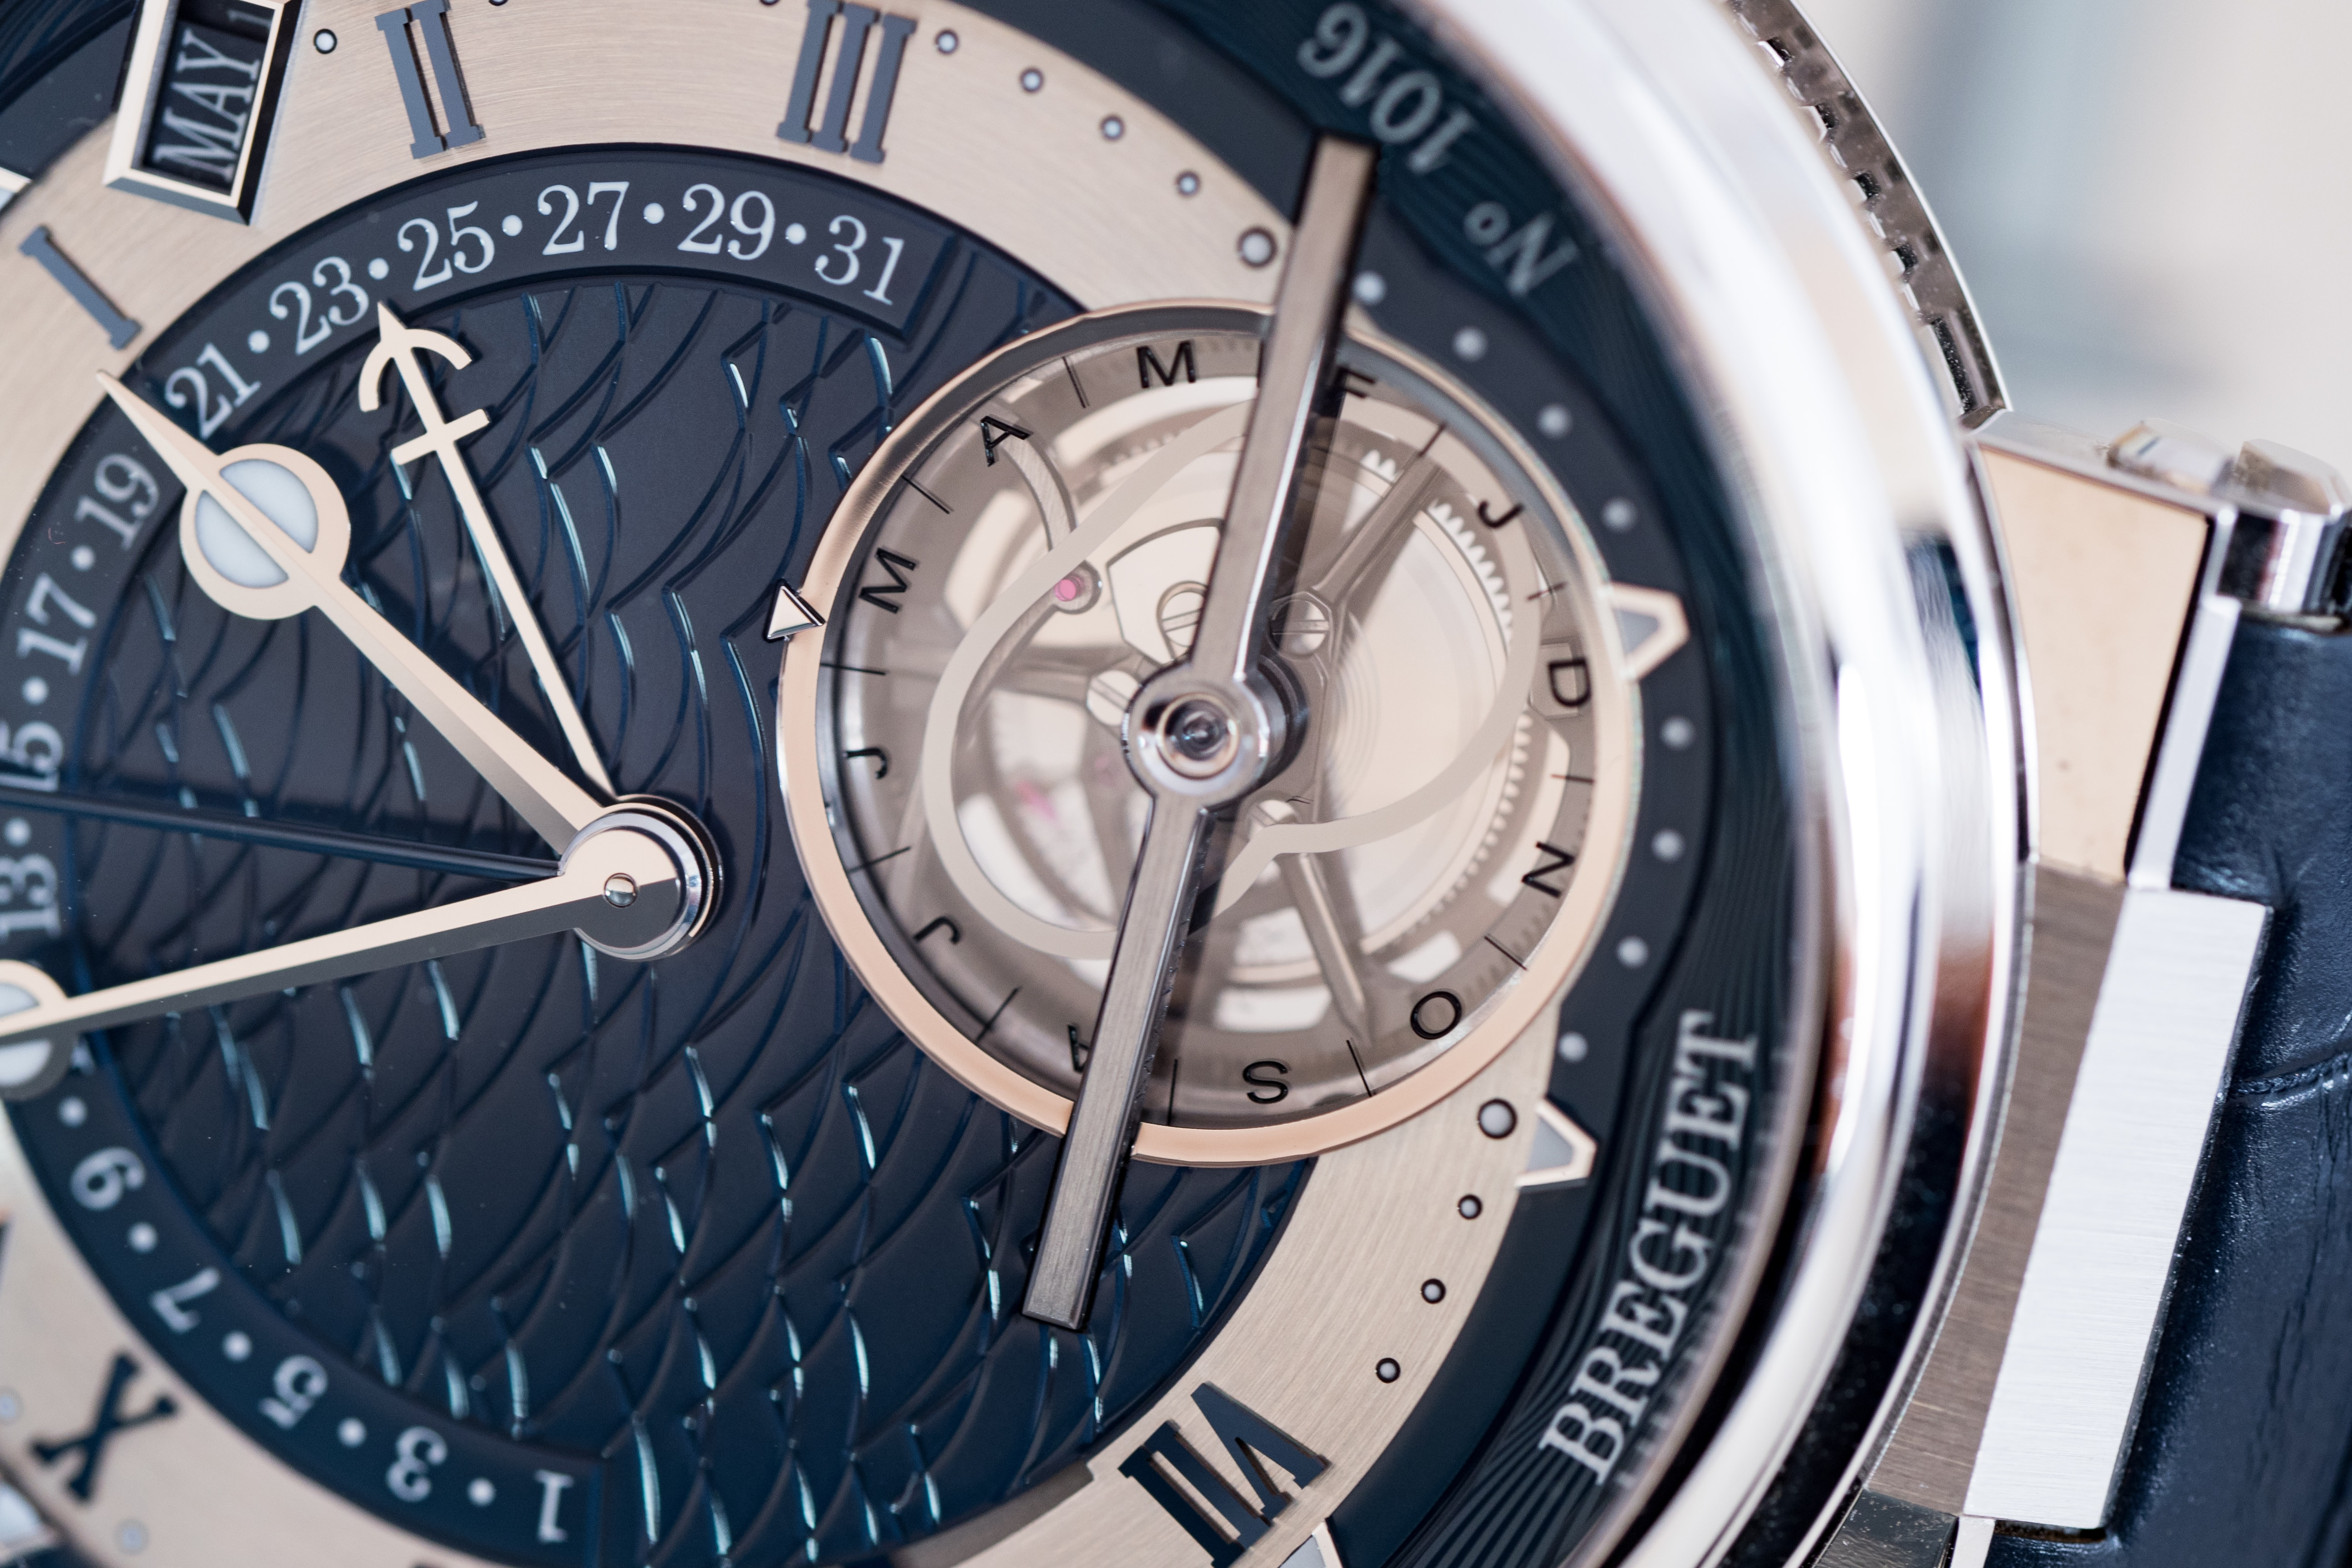 breguet 5887 equation of time marchant Introducing: The Breguet Marine quation Marchante 5887 Introducing: The Breguet Marine quation Marchante 5887 P5241035